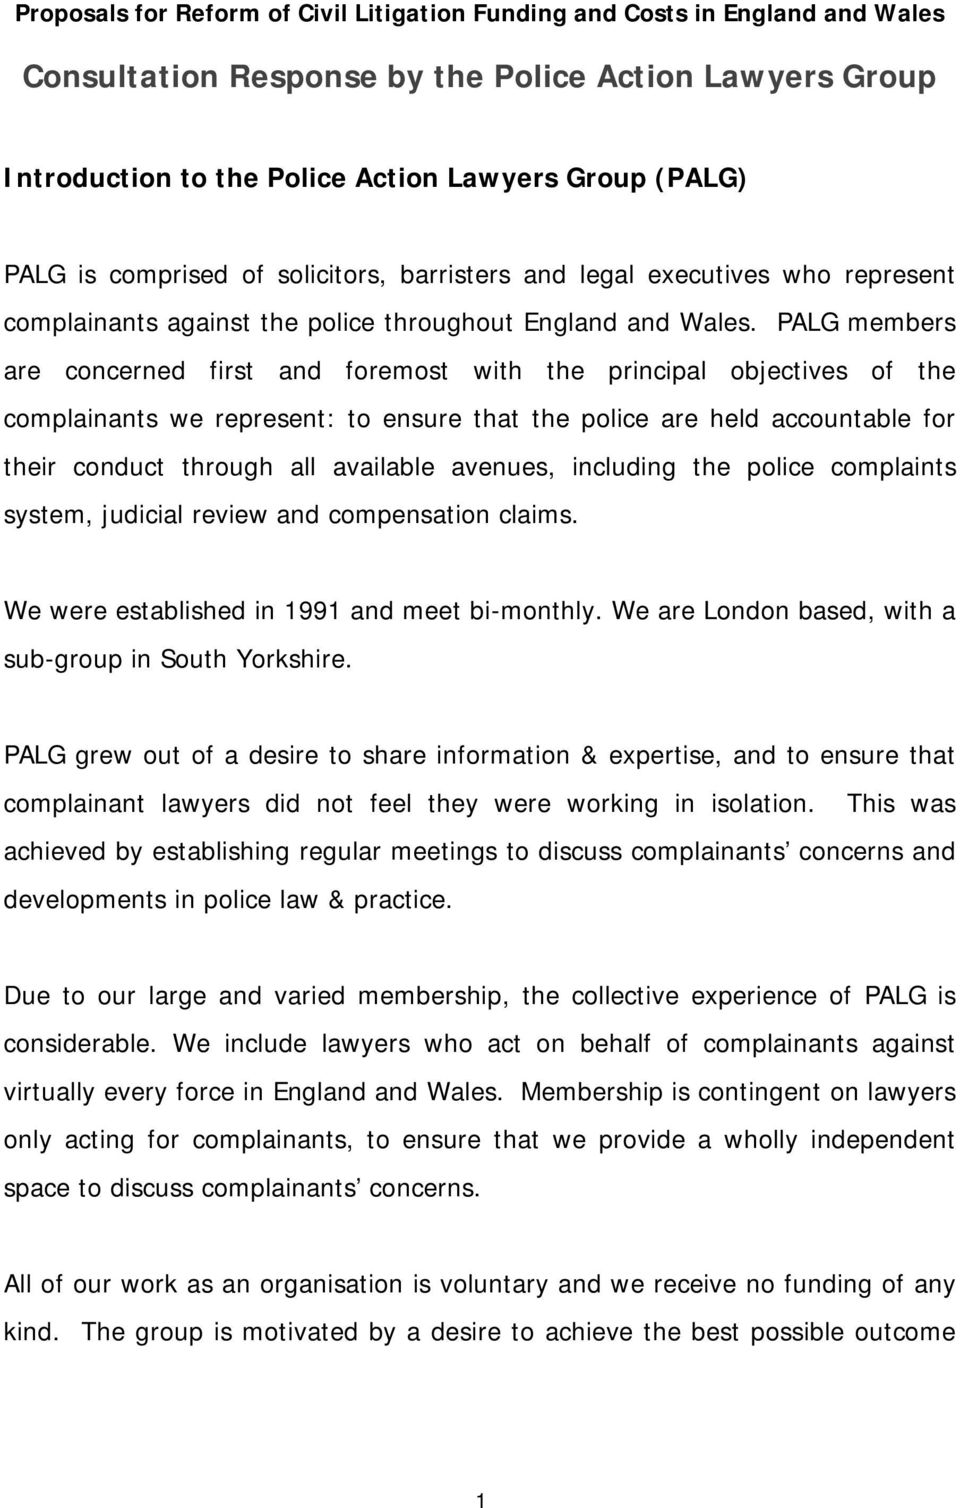 PALG members are concerned first and foremost with the principal objectives of the complainants we represent: to ensure that the police are held accountable for their conduct through all available